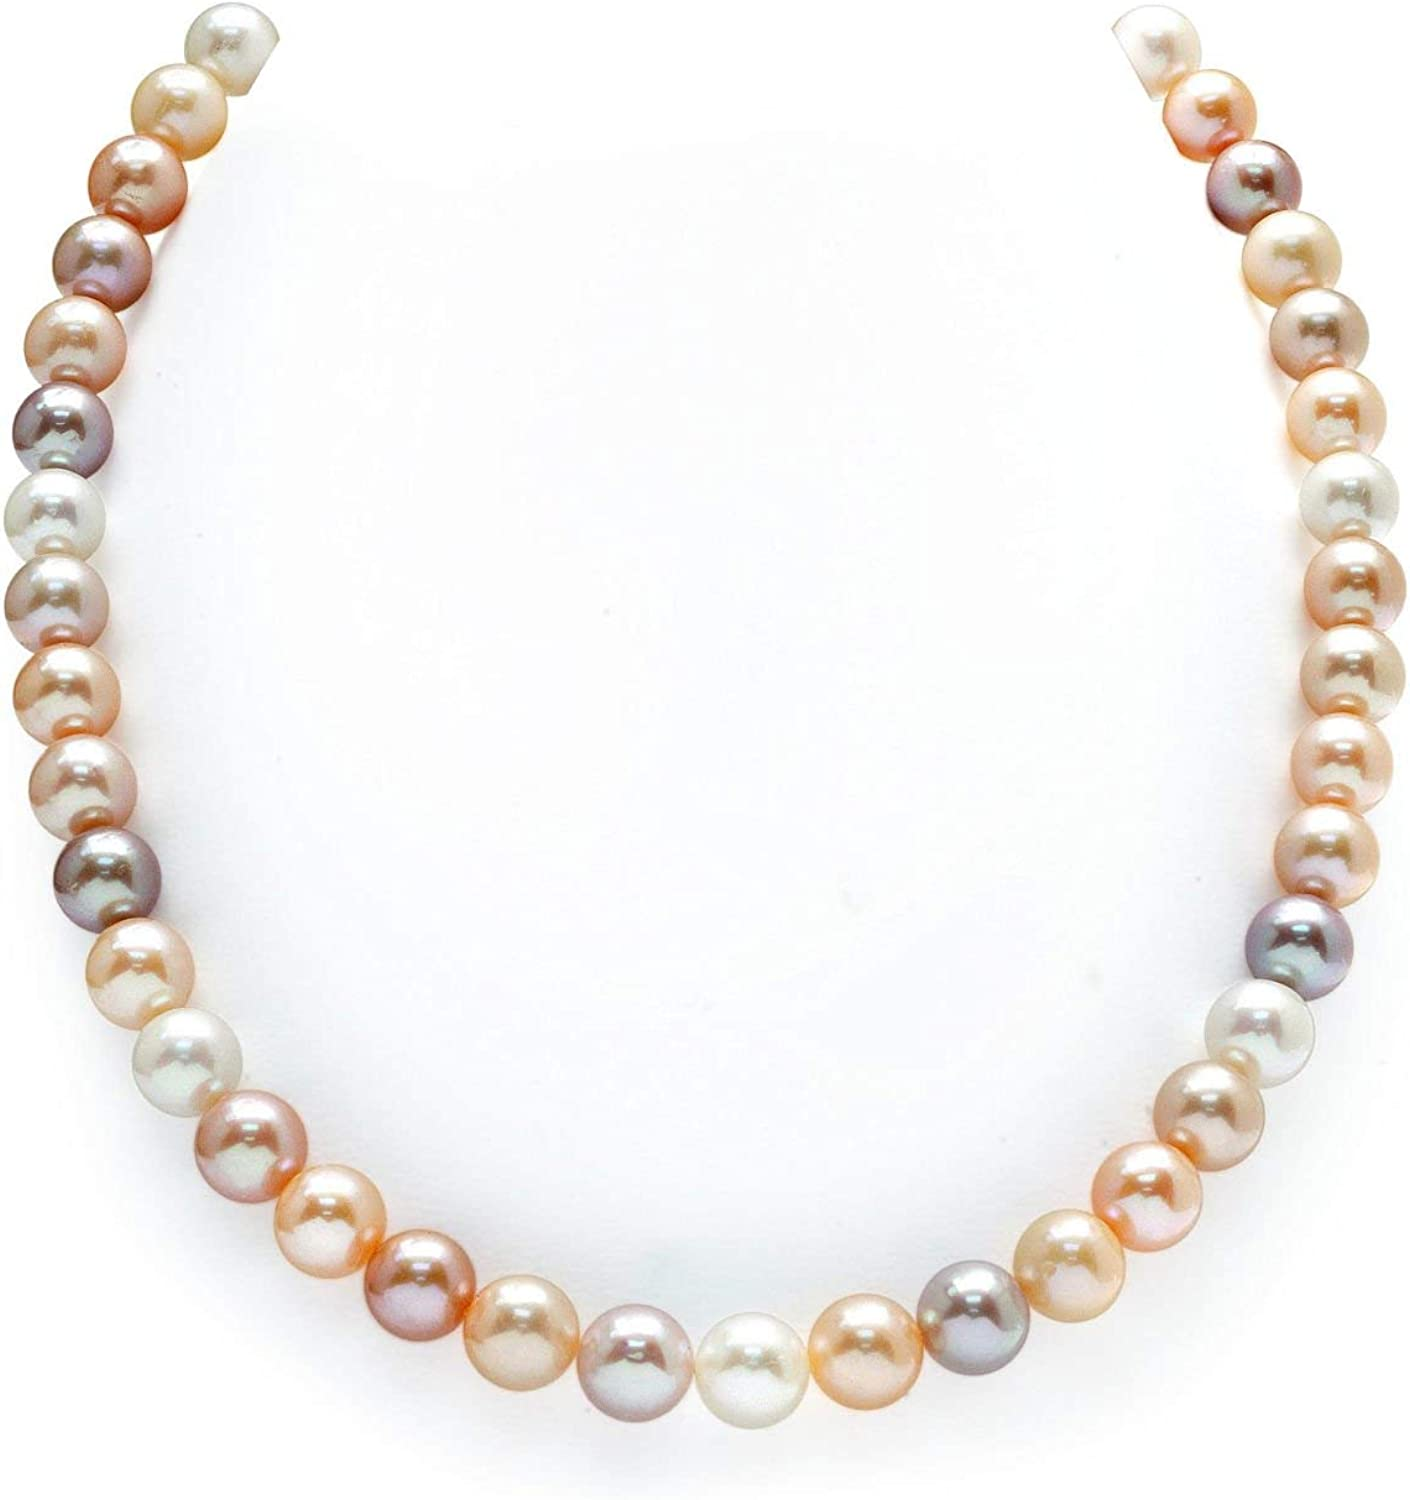 THE Popular products PEARL SOURCE 14K Gold Freshwater Pearl Cultured Super intense SALE N Multicolor